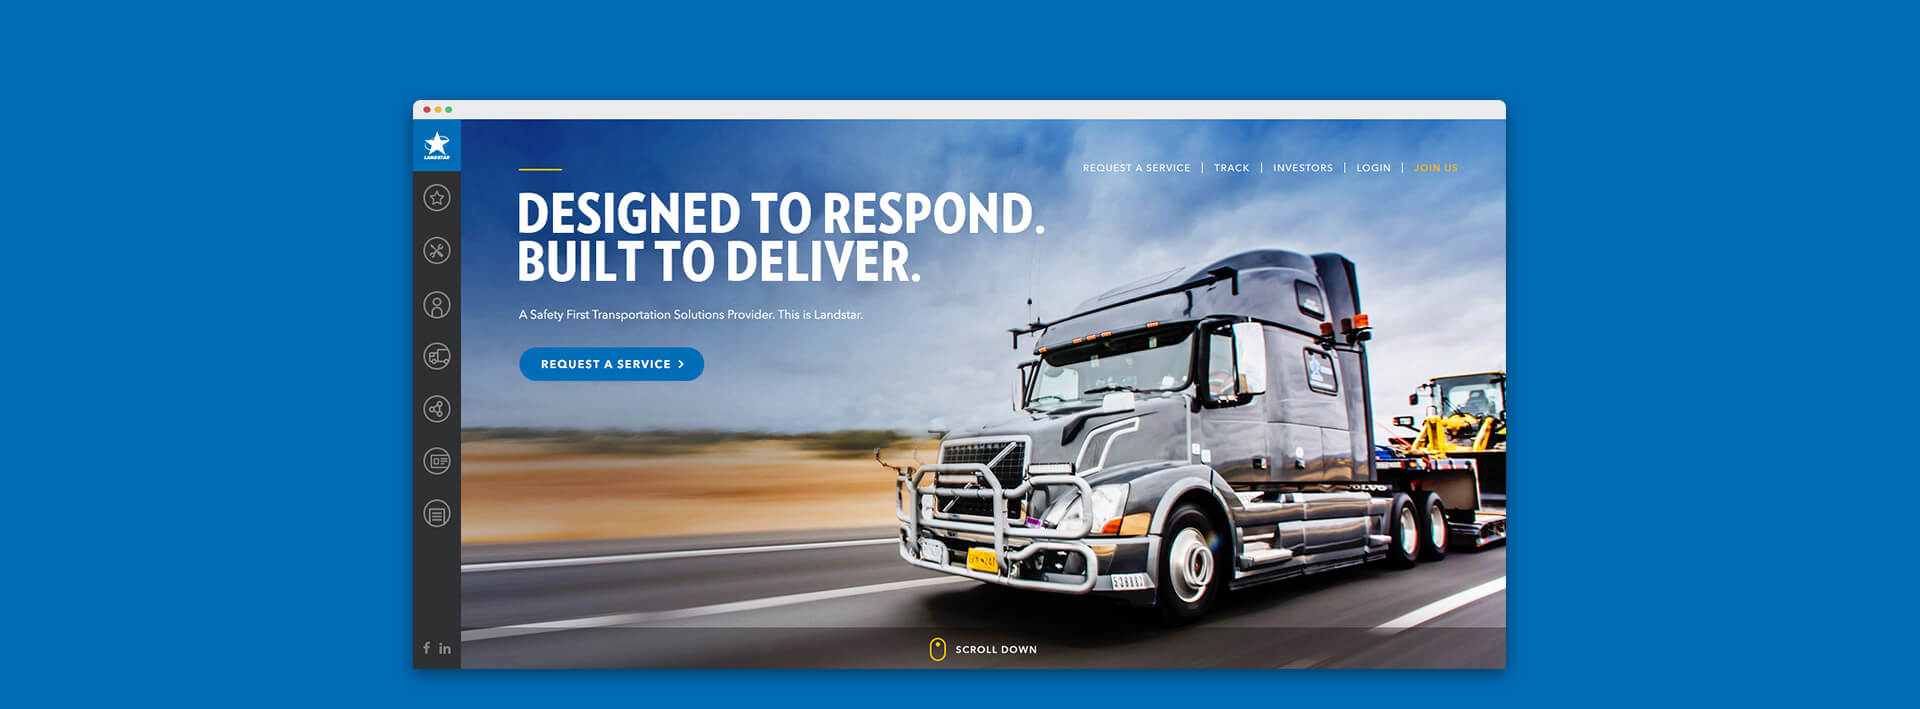 Landstar_web-pages-1